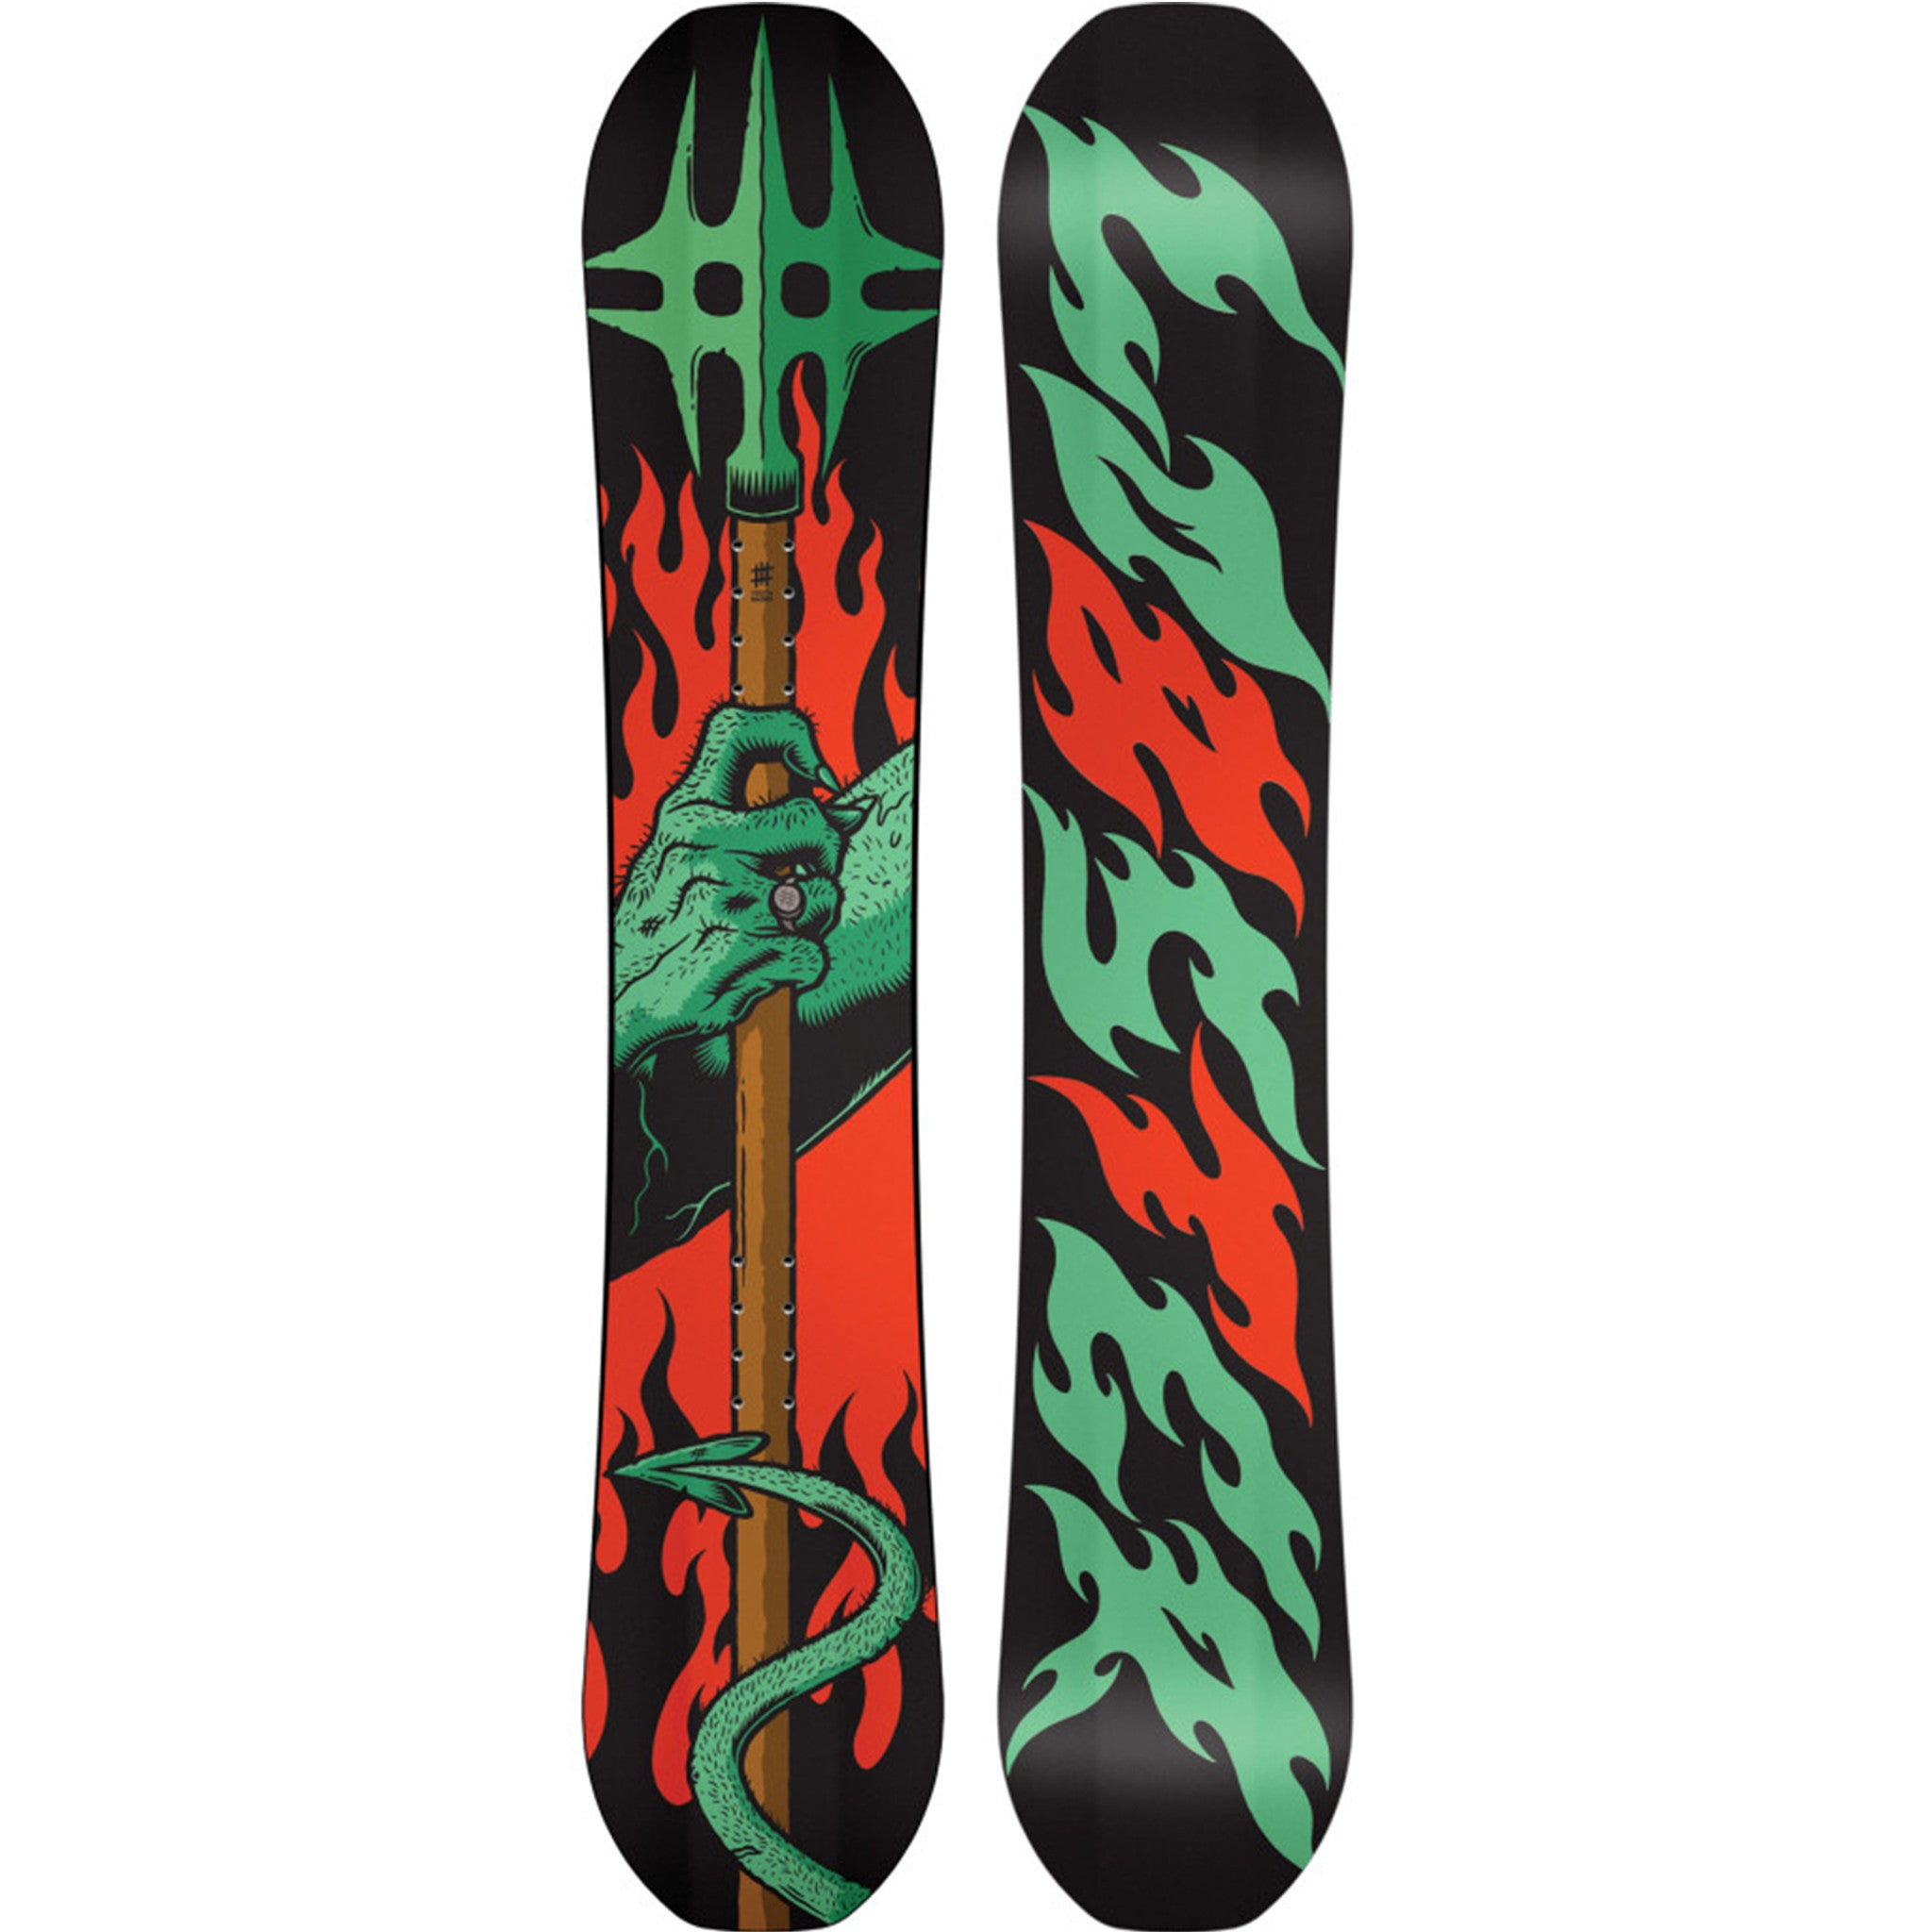 Youthboard - Stoked Boardshop